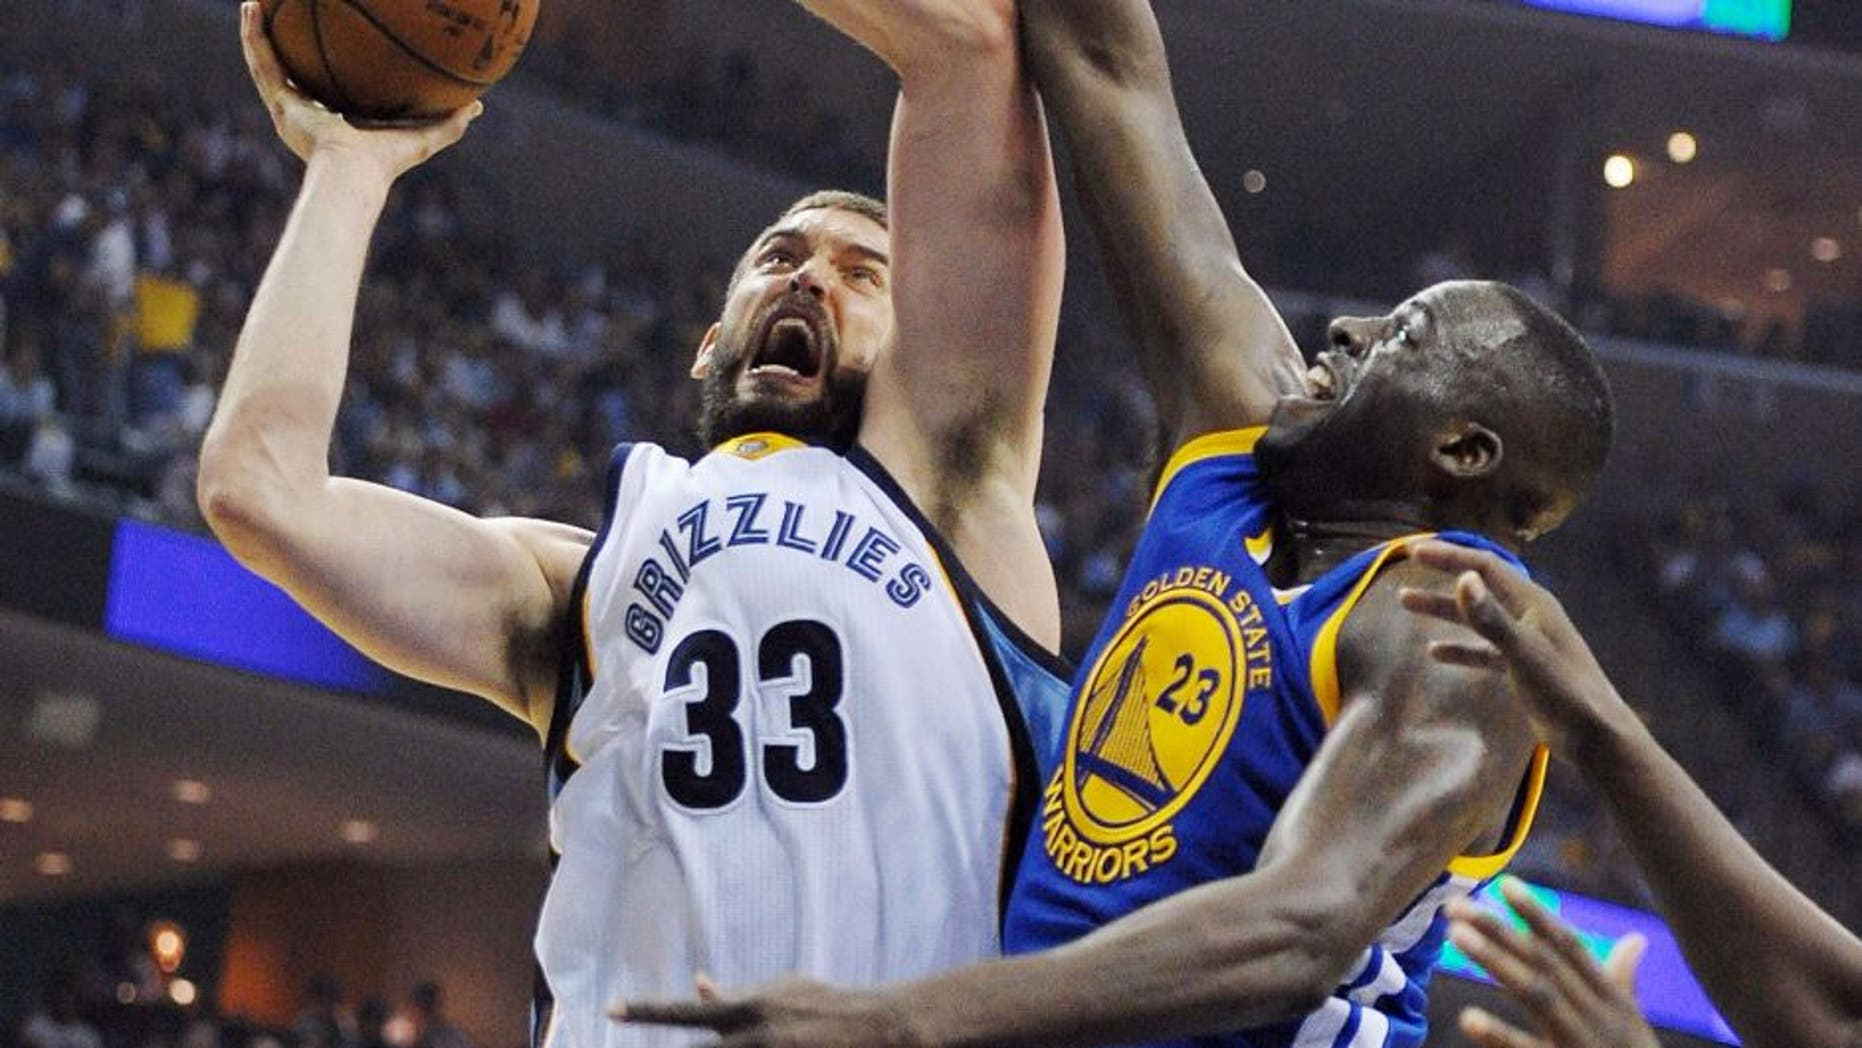 May 9, 2015; Memphis, TN, USA; Memphis Grizzlies center Marc Gasol (33) goes to the basket against Golden State Warriors forward Draymond Green (23) during game three of the second round of the NBA Playoffs at FedExForum. Mandatory Credit: Justin Ford-USA TODAY Sports